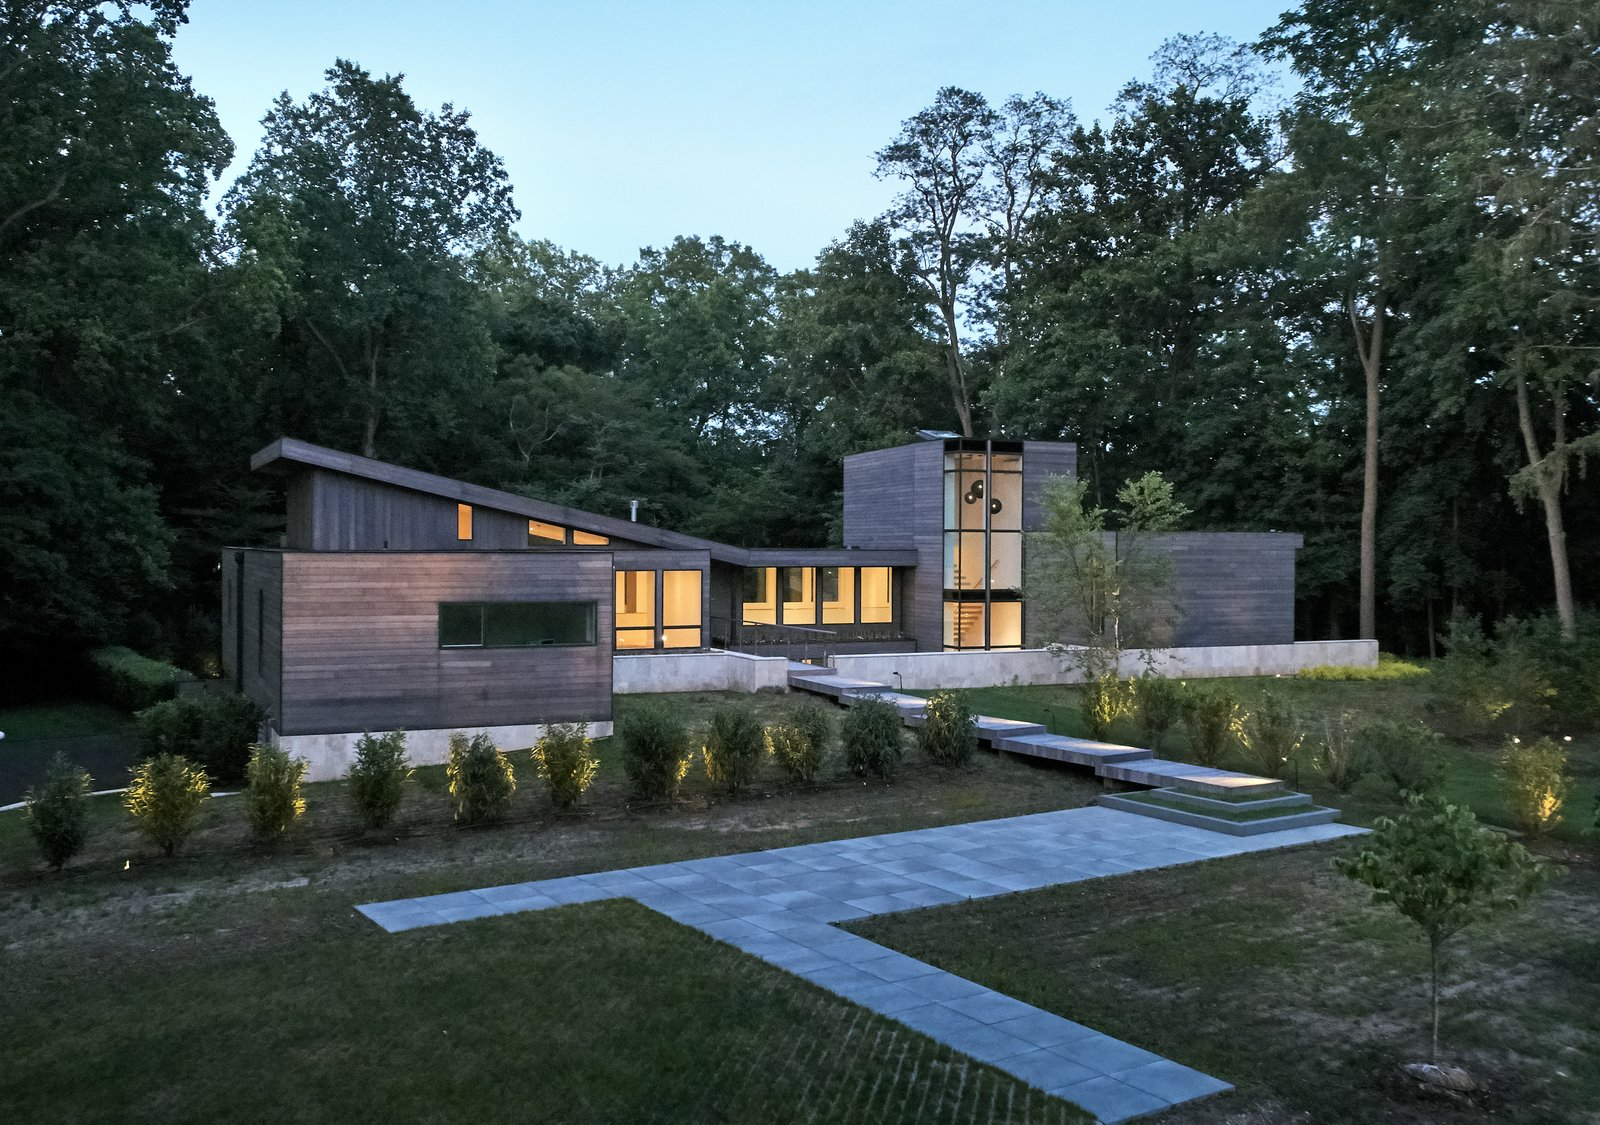 Exterior, Butterfly, Shingles, Wood, Hipped, Metal, Glass, House, and Flat At first glance, the structure appears to be a single-story home. The surrounding trees create additional privacy as the yard begins to slope toward the rear.  Exterior Metal House Hipped Photos from Walls of Windows Connect a Home With Earth and Sky